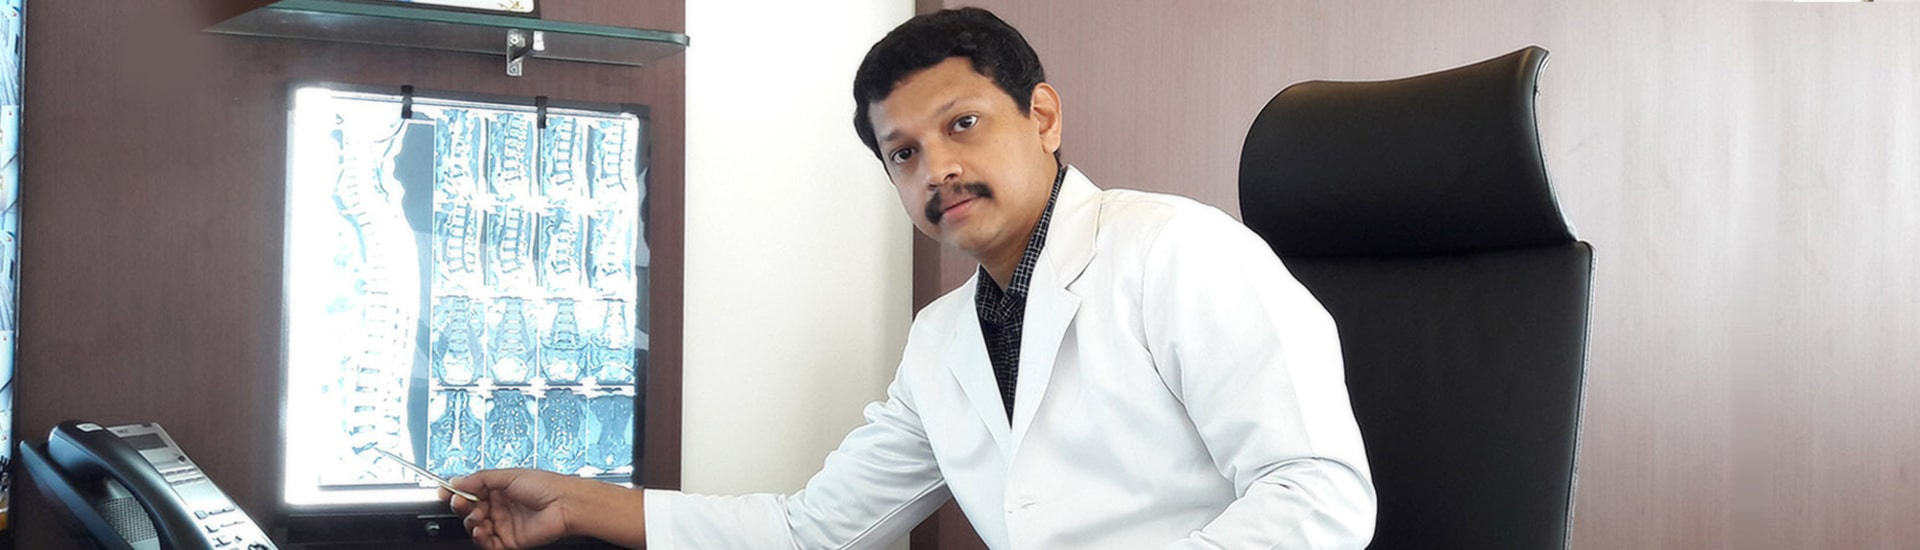 Best Spine care centre in India, Spine Specialist Dr Robin Guru Singh